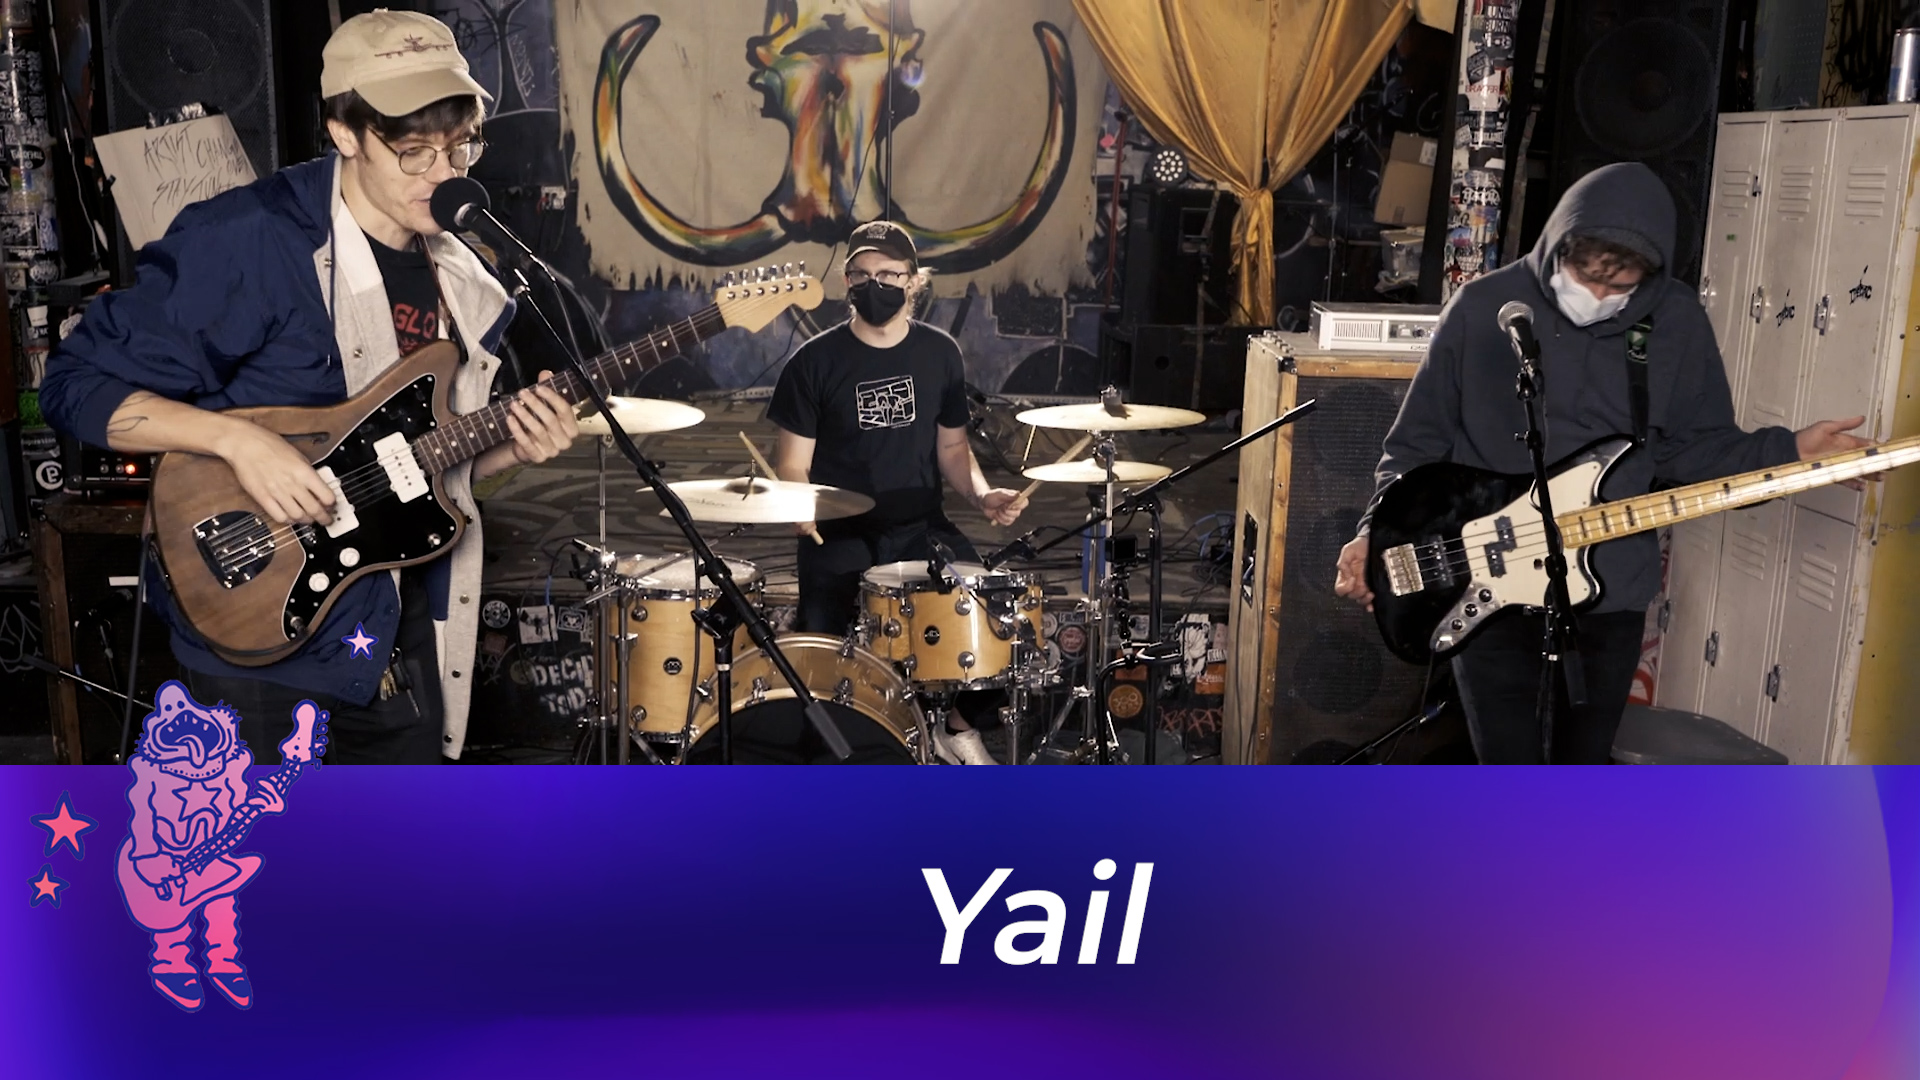 Consequence's Protect Live Music: Yail